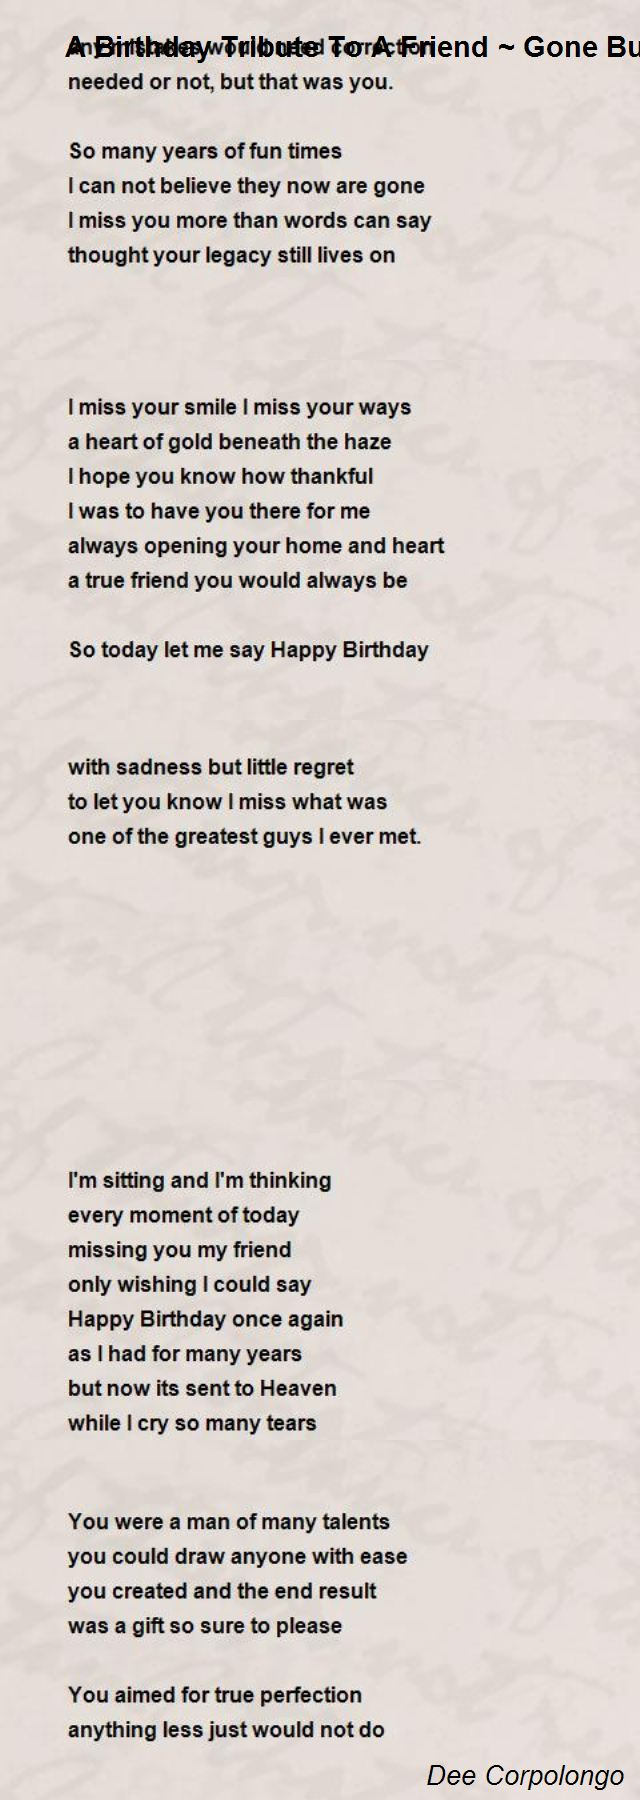 forgotten birthday poem ; a-birthday-tribute-to-a-friend-gone-but-never-forgotten